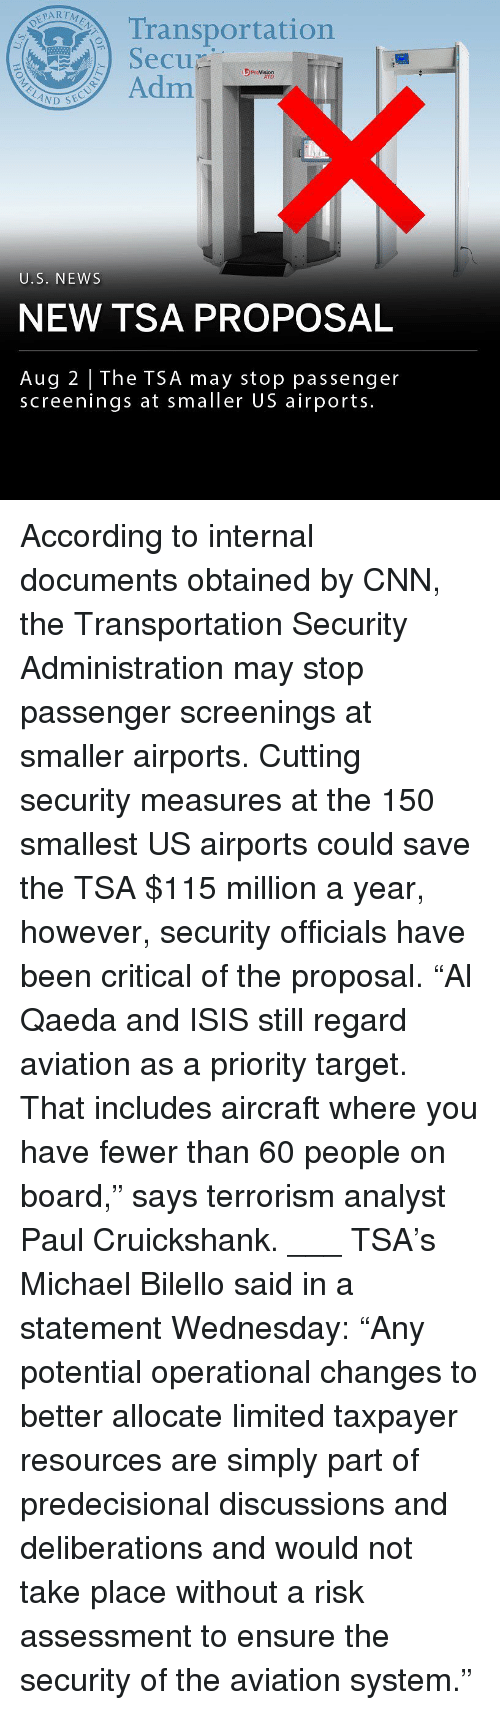 "cnn.com, Isis, and Memes: Transportation  SecuD  se  3 ProVision  ATD  Adm  U.S. NEWS  NEW TSA PROPOSAL  Aug 2 The TSA may stop passenger  screenings at smaller US airports. According to internal documents obtained by CNN, the Transportation Security Administration may stop passenger screenings at smaller airports. Cutting security measures at the 150 smallest US airports could save the TSA $115 million a year, however, security officials have been critical of the proposal. ""Al Qaeda and ISIS still regard aviation as a priority target. That includes aircraft where you have fewer than 60 people on board,"" says terrorism analyst Paul Cruickshank. ___ TSA's Michael Bilello said in a statement Wednesday: ""Any potential operational changes to better allocate limited taxpayer resources are simply part of predecisional discussions and deliberations and would not take place without a risk assessment to ensure the security of the aviation system."""